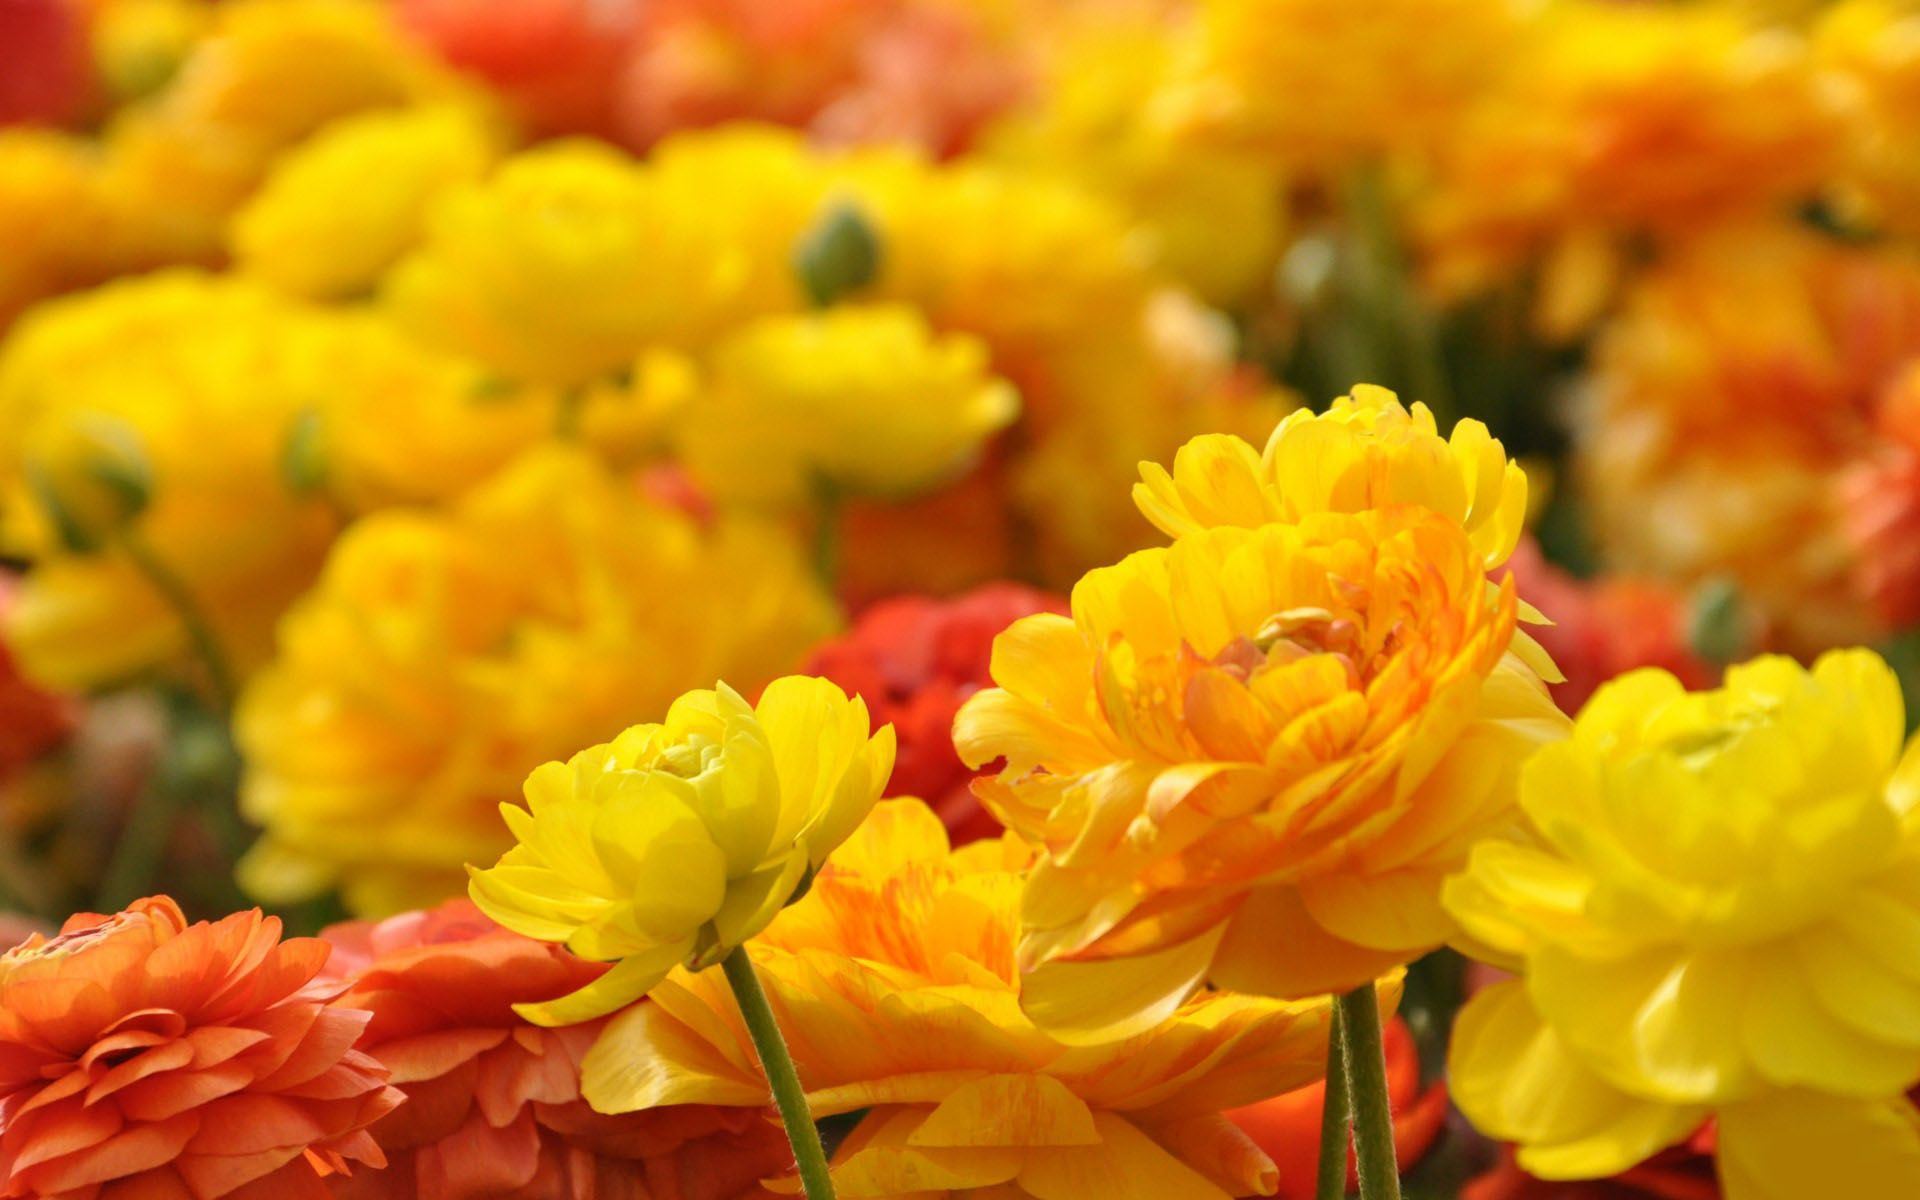 Yellow Flower Hd Wallpapers Wallpaper Cave